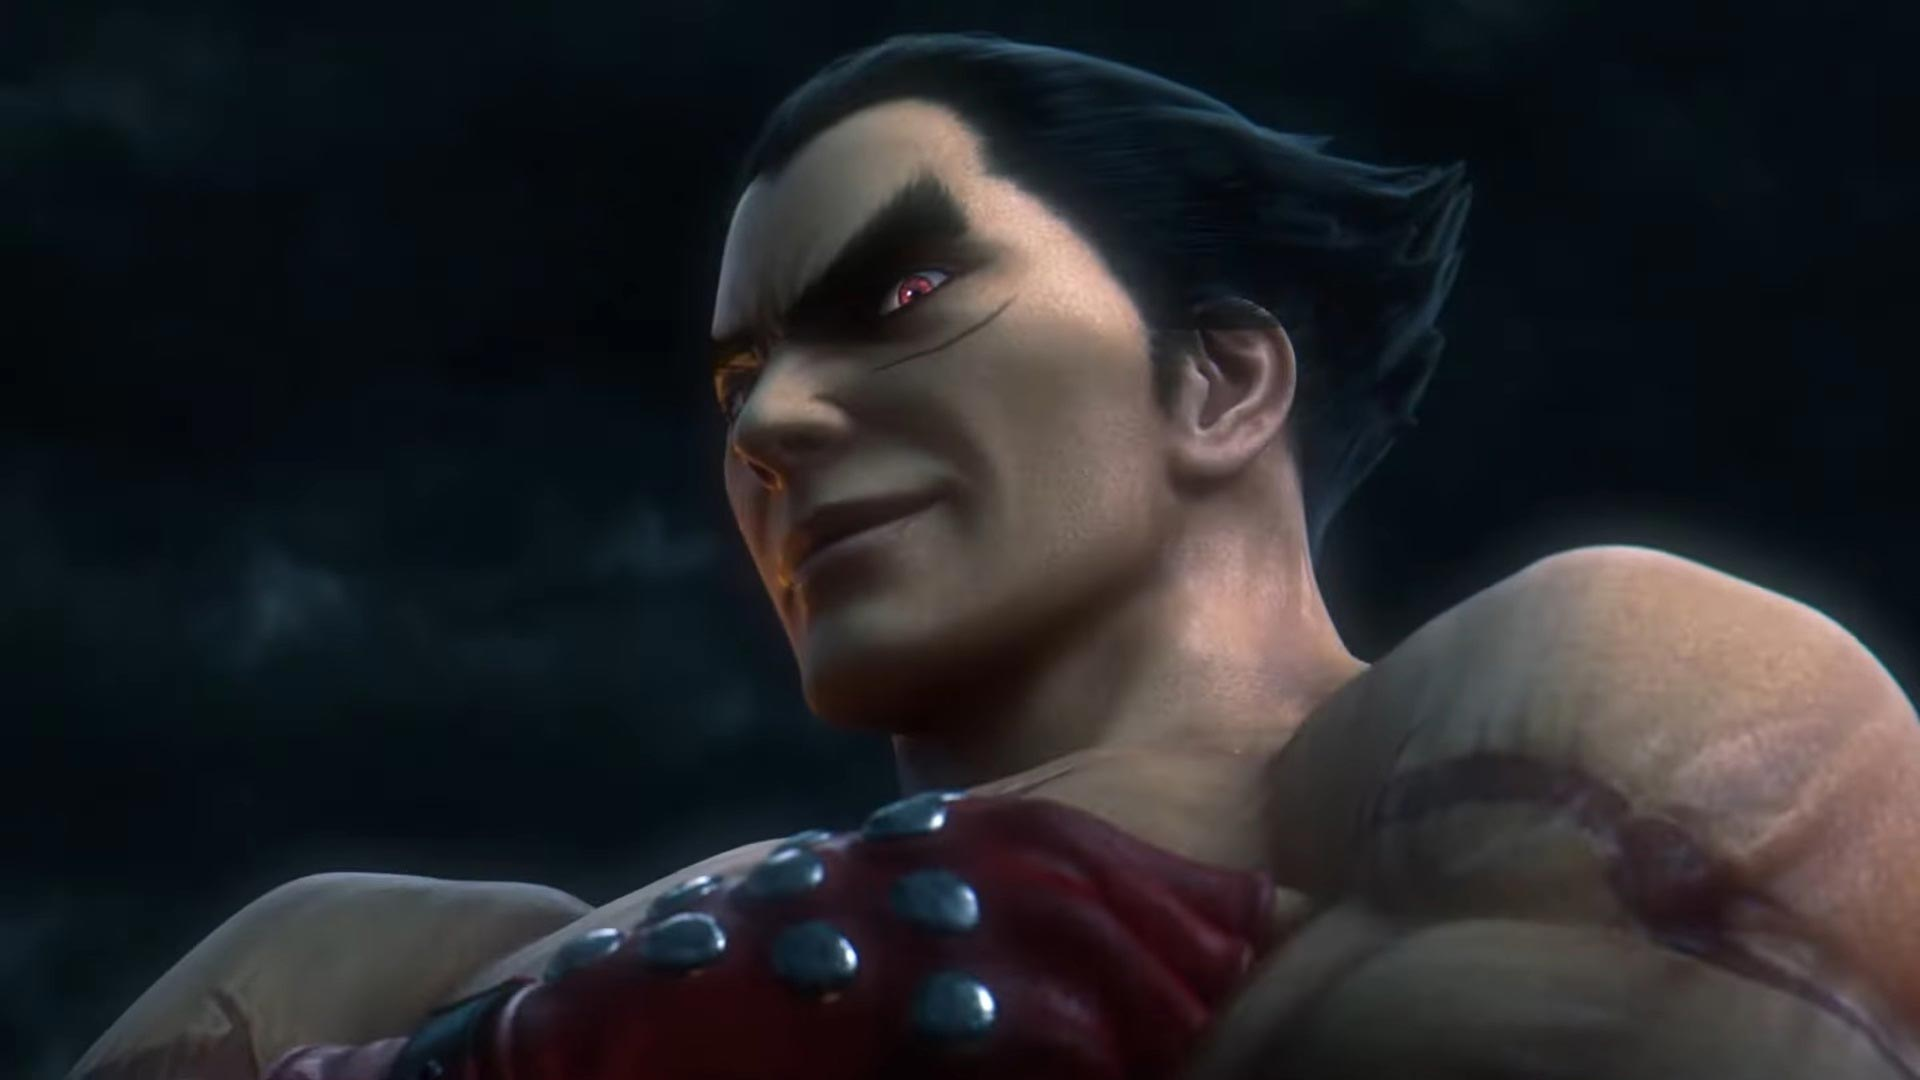 Kazuya in Super Smash Bros. Ultimate 1 out of 6 image gallery